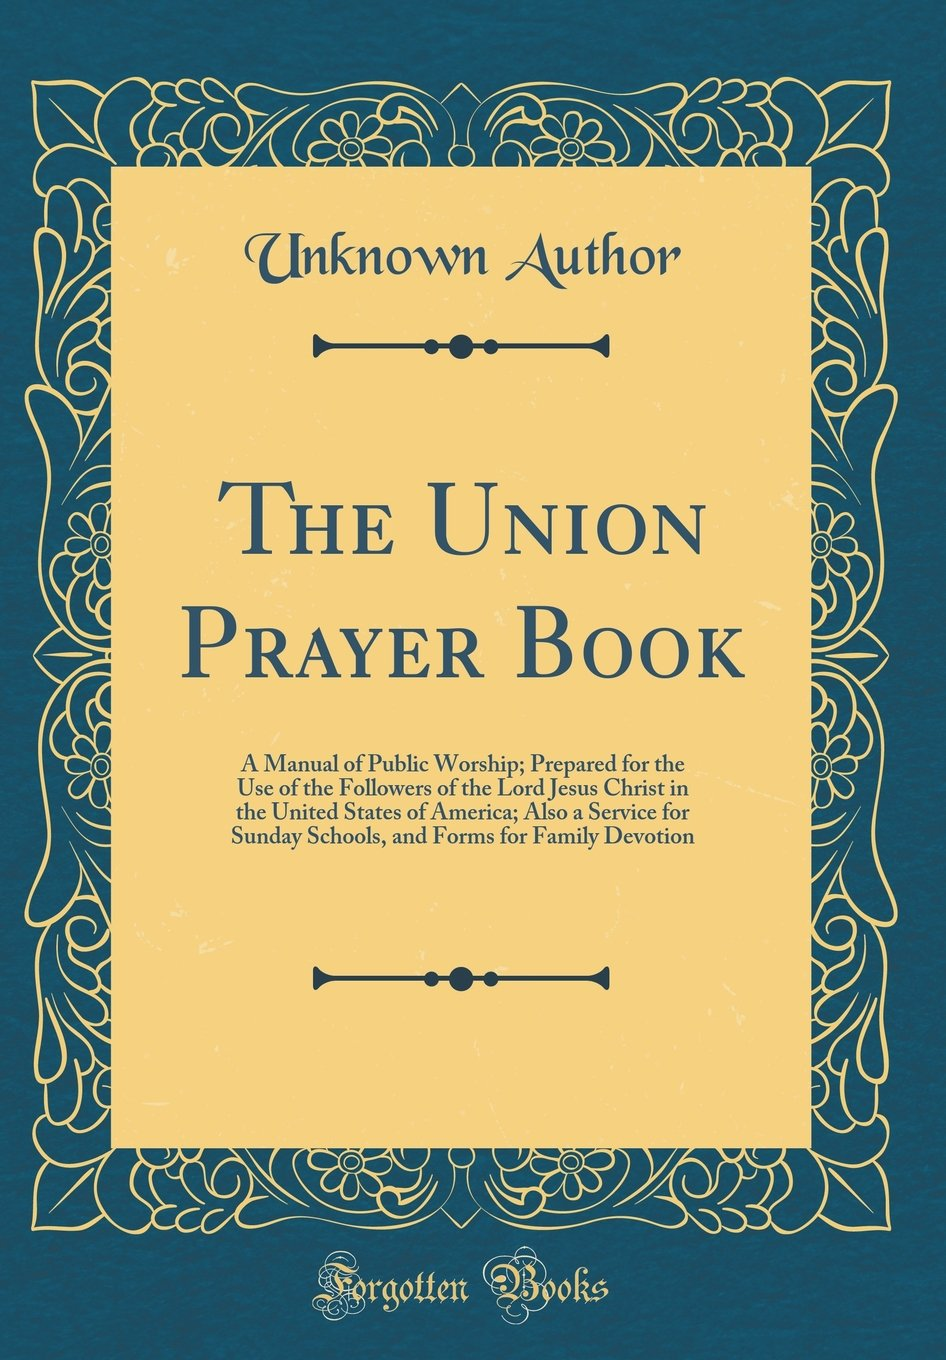 Read Online The Union Prayer Book: A Manual of Public Worship; Prepared for the Use of the Followers of the Lord Jesus Christ in the United States of America; ... Forms for Family Devotion (Classic Reprint) PDF